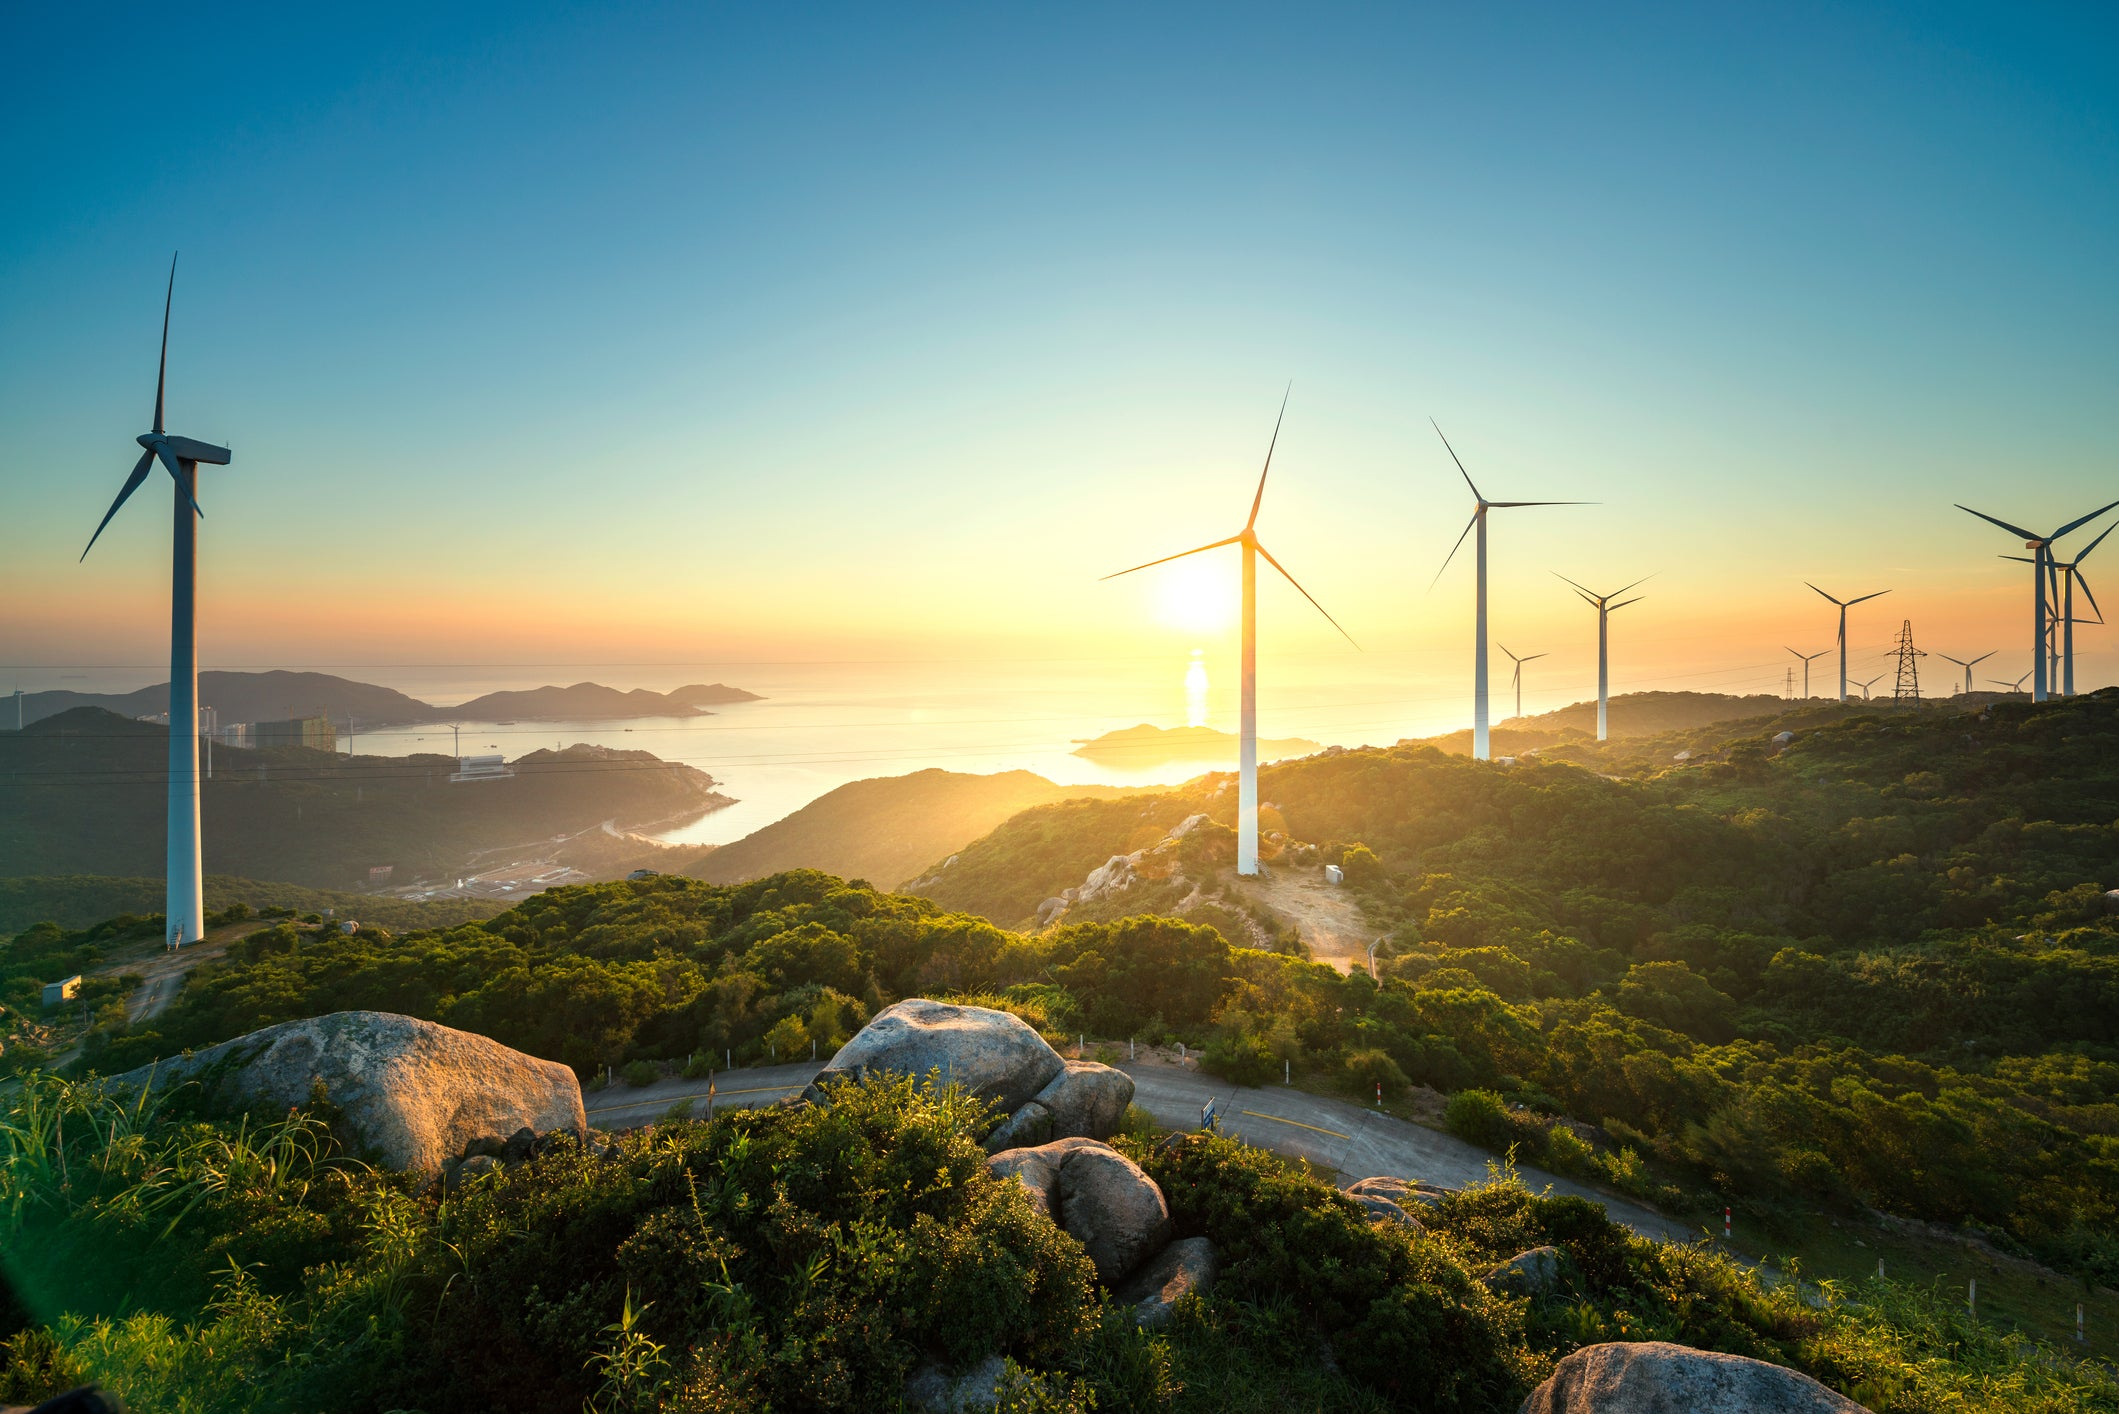 Renewable Energy Stocks: Is Now a Good Time to Buy?